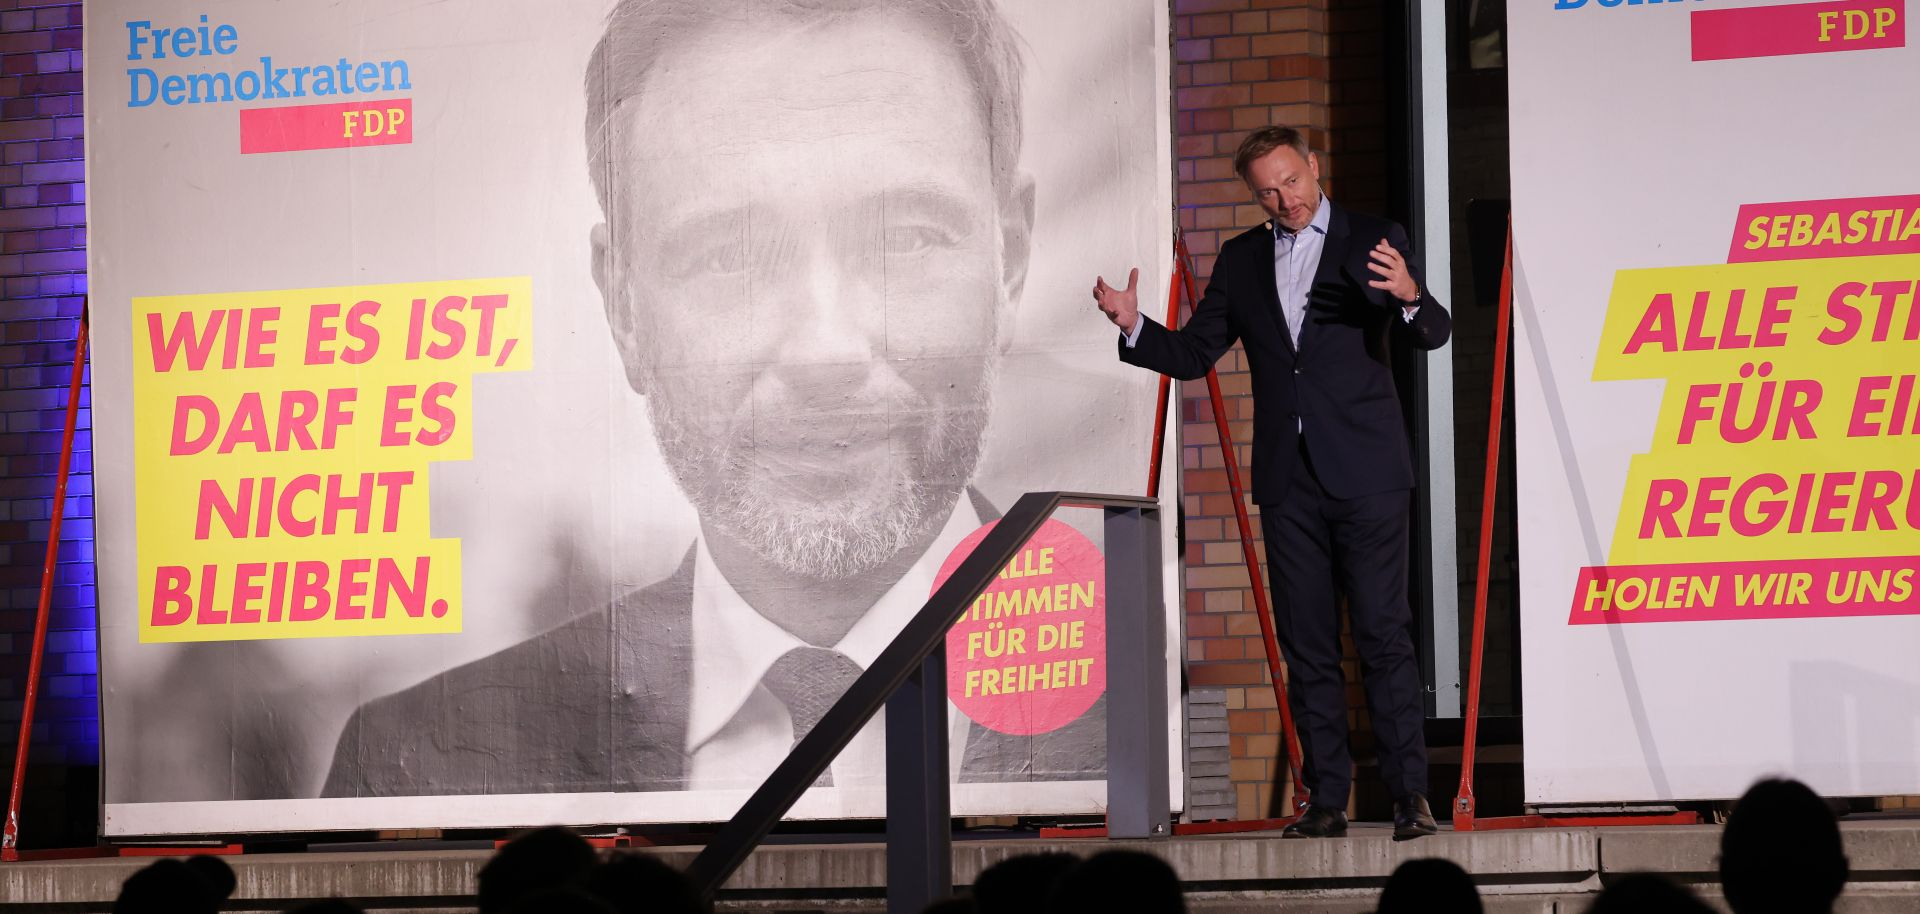 Christian Lindner, leader and lead candidate of the German Free Democrats (FDP), speaks at the concluding FDP election campaign gathering ahead of federal parliamentary elections on Sept. 24, 2021, in Berlin.